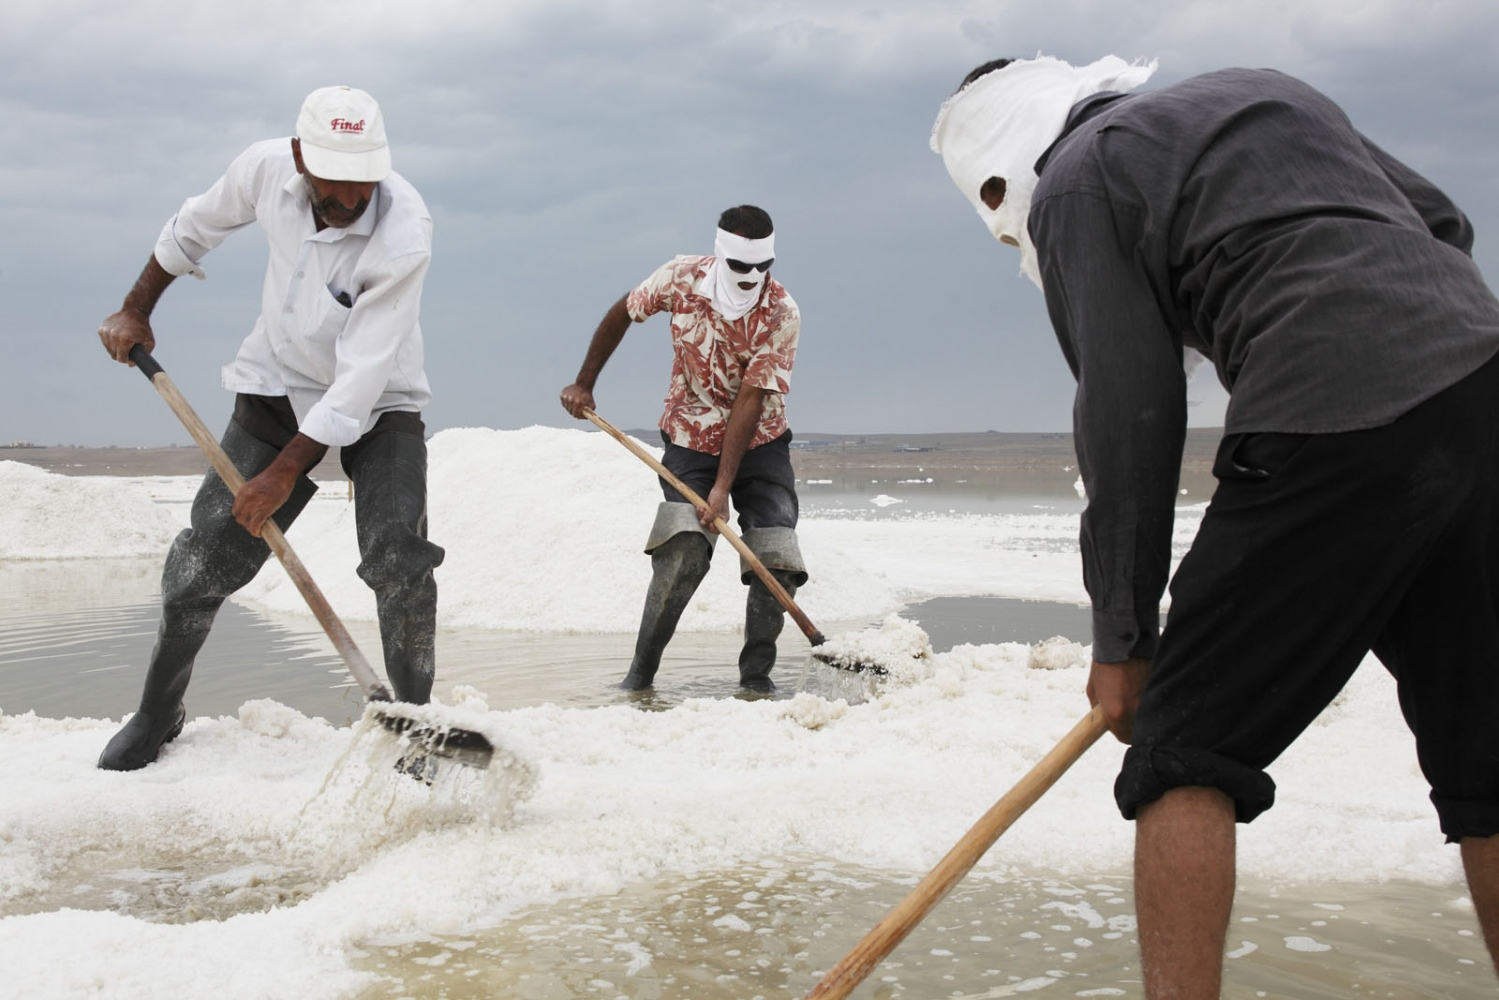 Workers weigh face masks to protect themselves from the sun at Binagadi Lake, a large salt lake close to the town of Masazir in Azerbaijan.